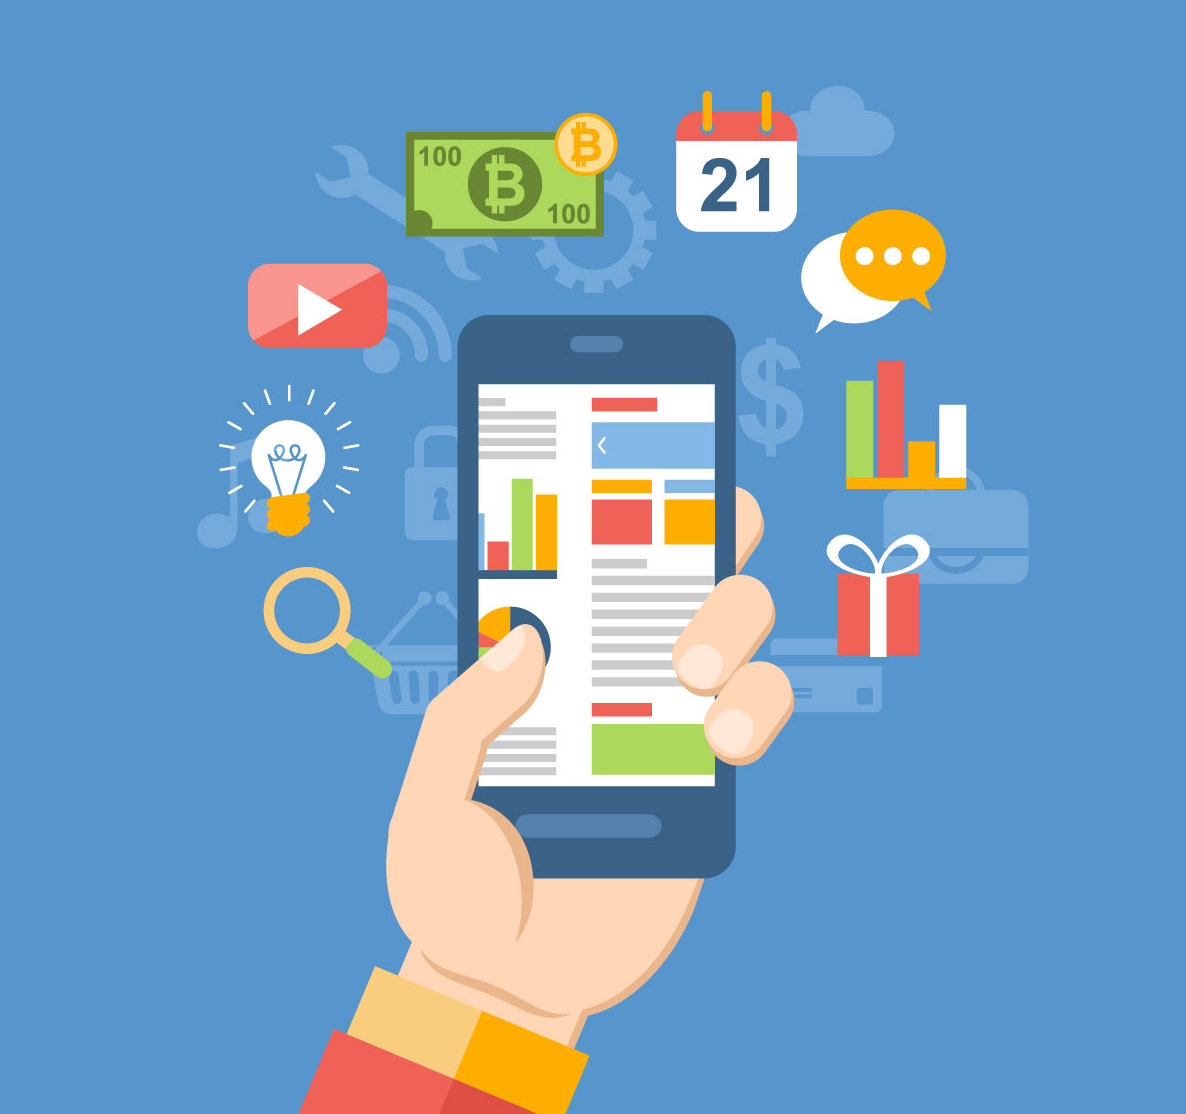 Educational Mobile Application Development Trends